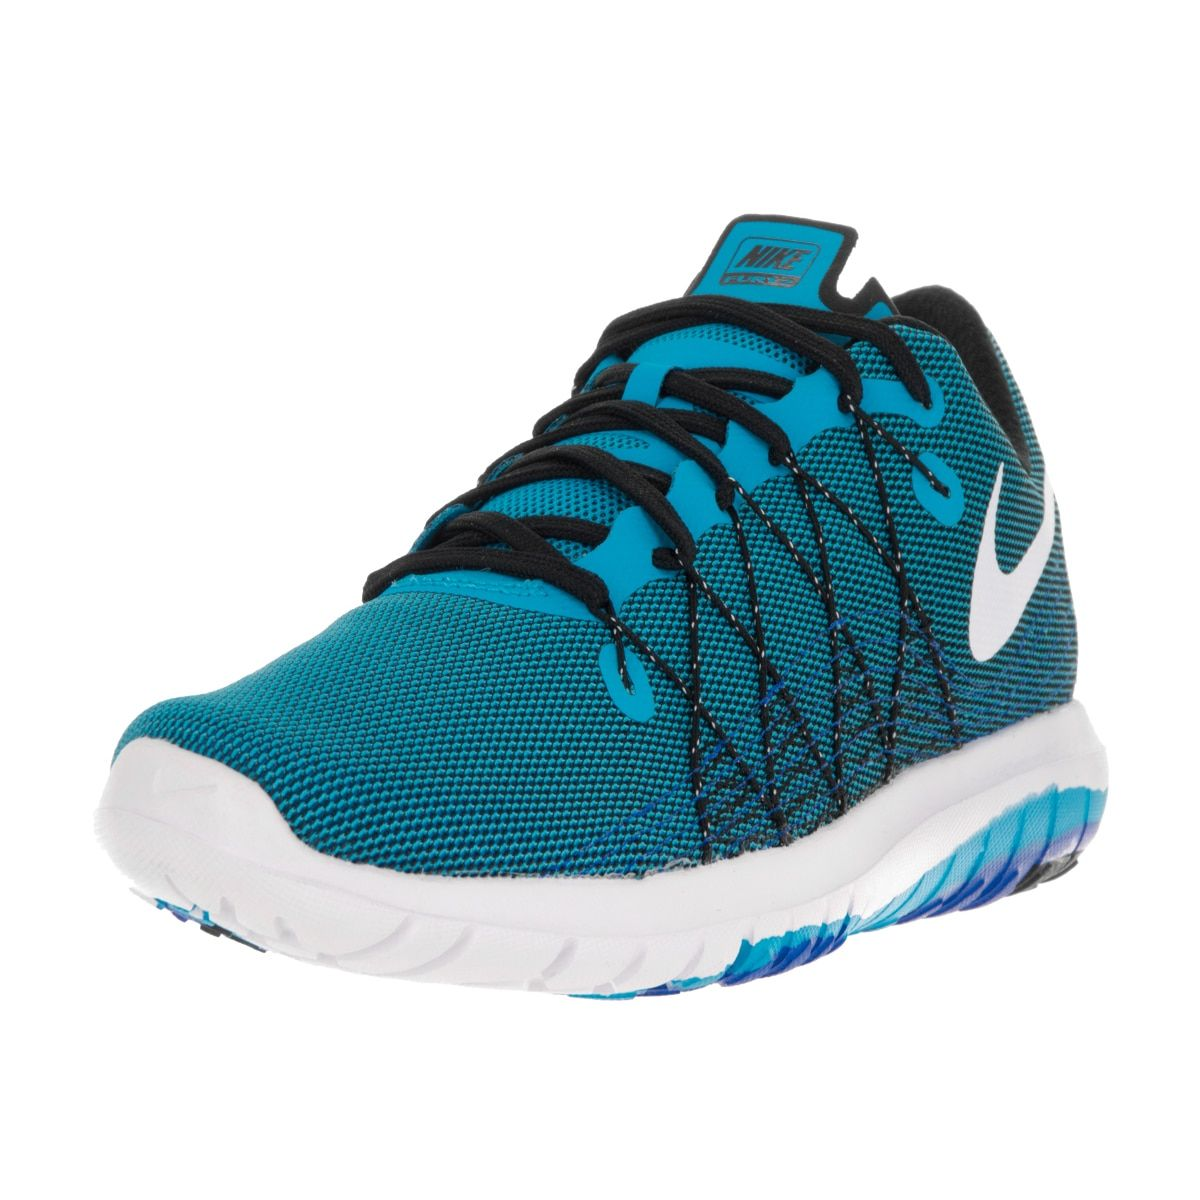 46e340f58b8 Nike Men s Flex Fury 2 Blue Glow White Black Rcr Blue Running Shoe ...